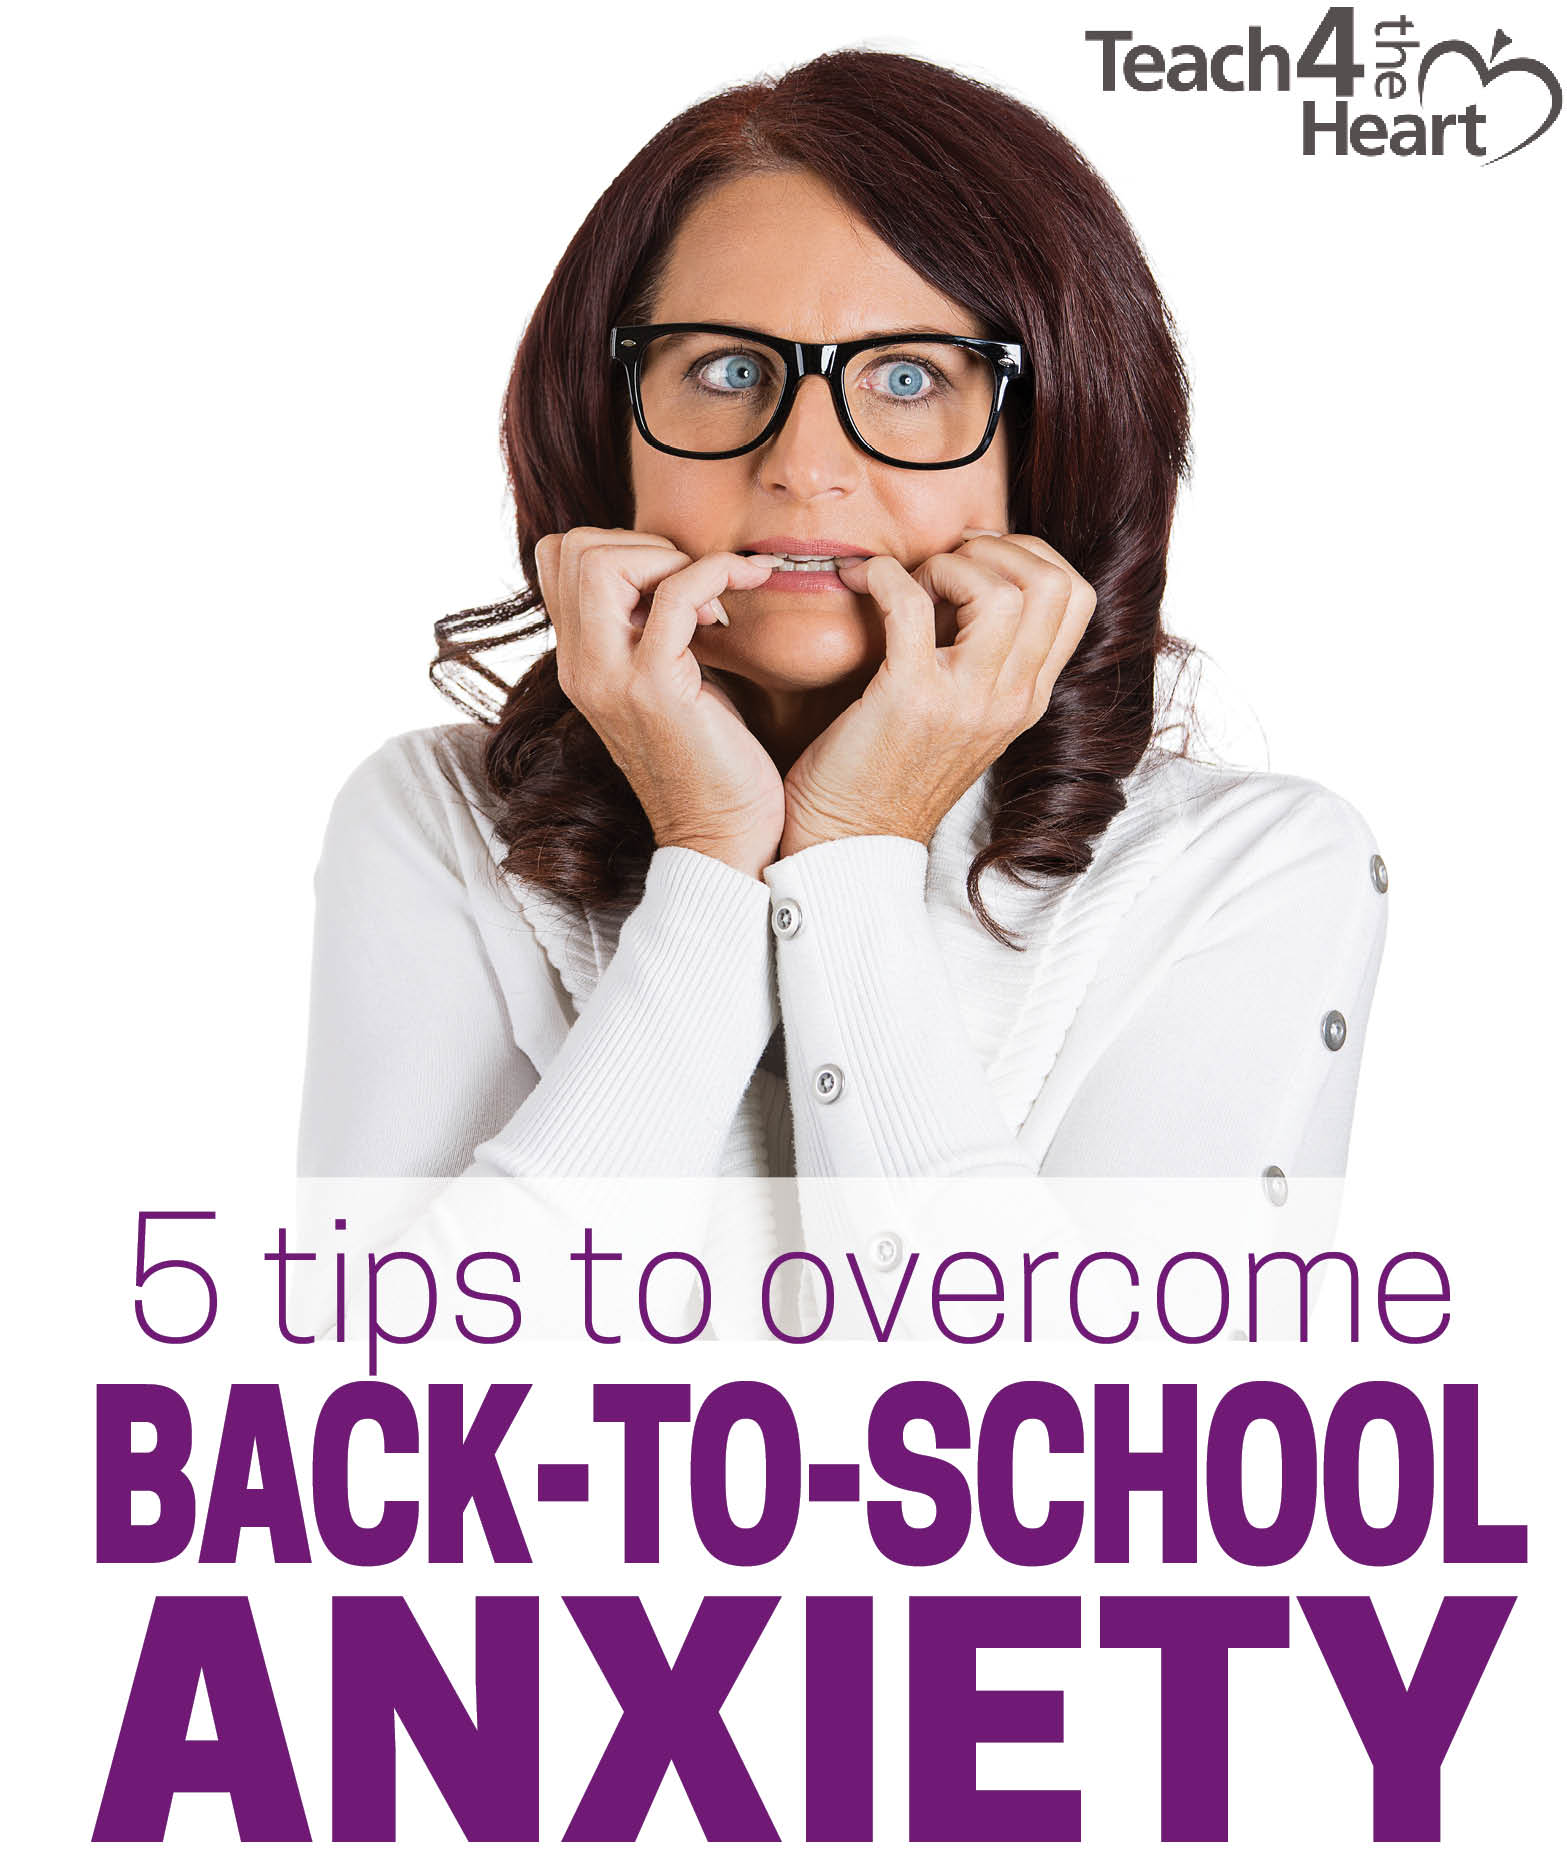 5 Tips to Overcome Back-to-School Anxiety | Teach 4 the Heart